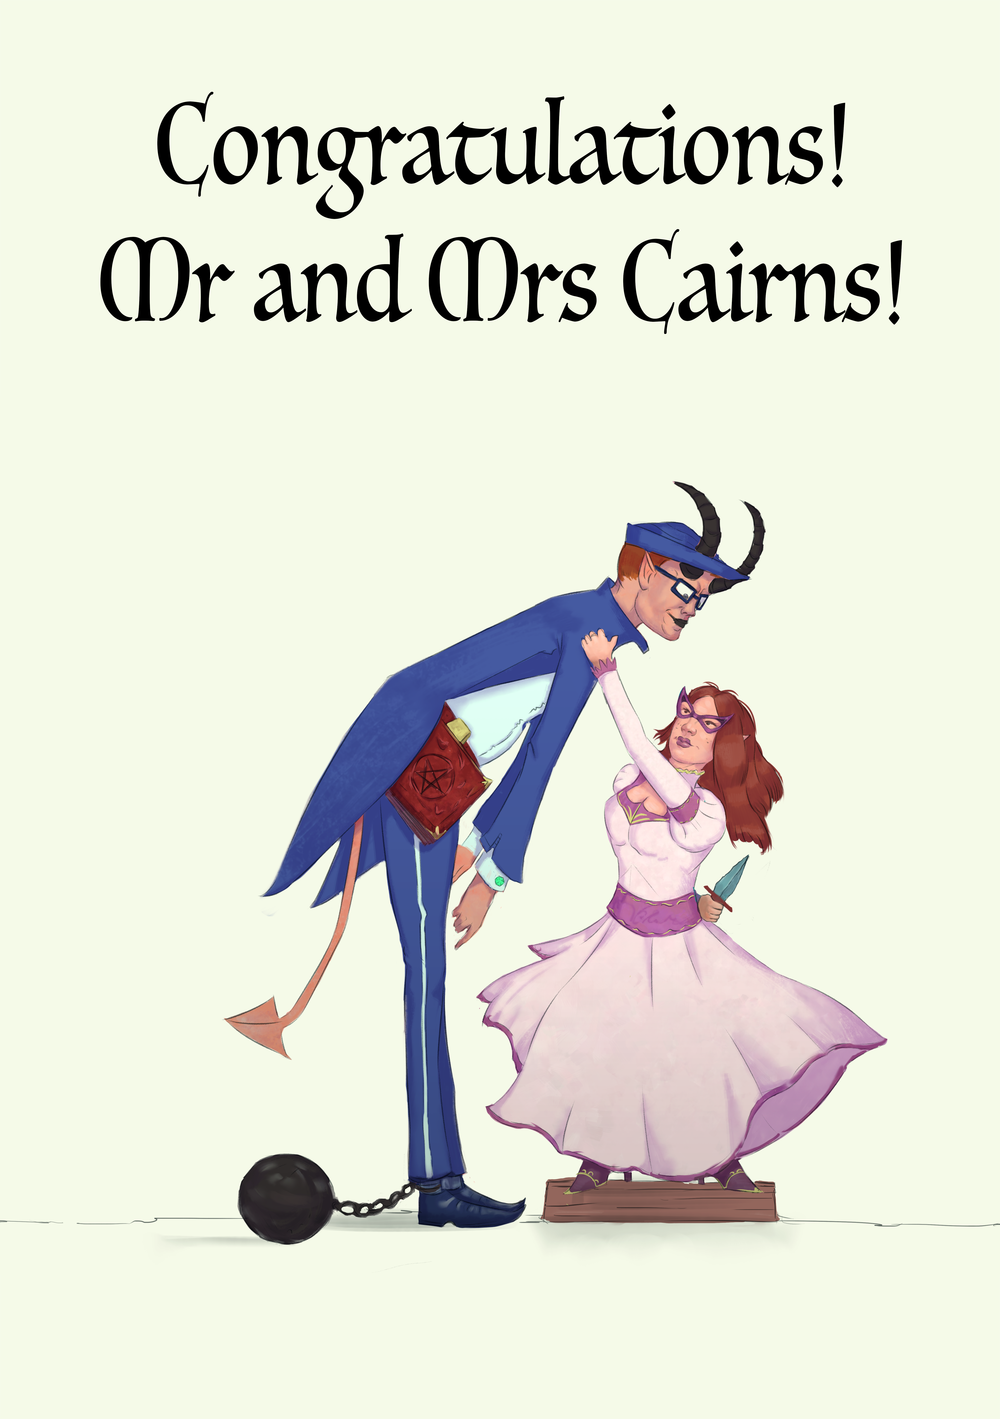 Mr and Mrs Cairns.png